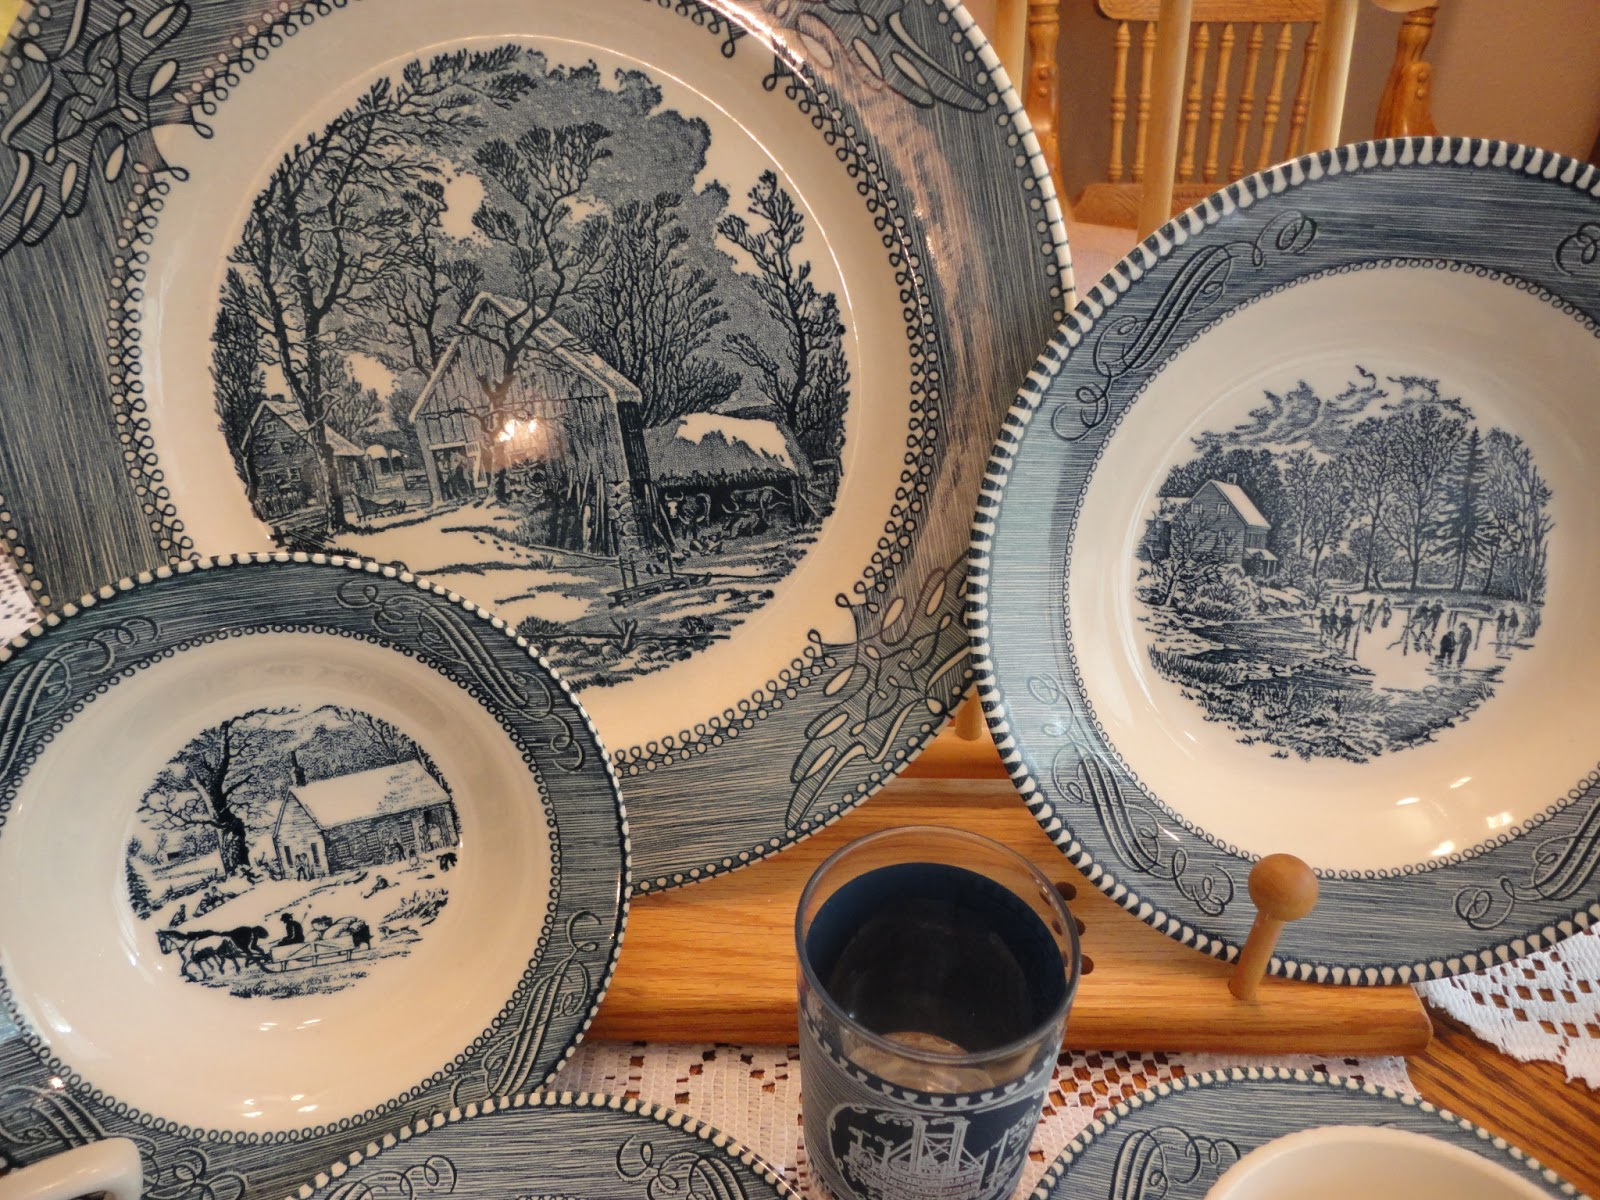 Each piece depicts a different Currier and Ives scene. & The Urge To Preserve - Musings of a life long learner: Dadu0027s Dishes